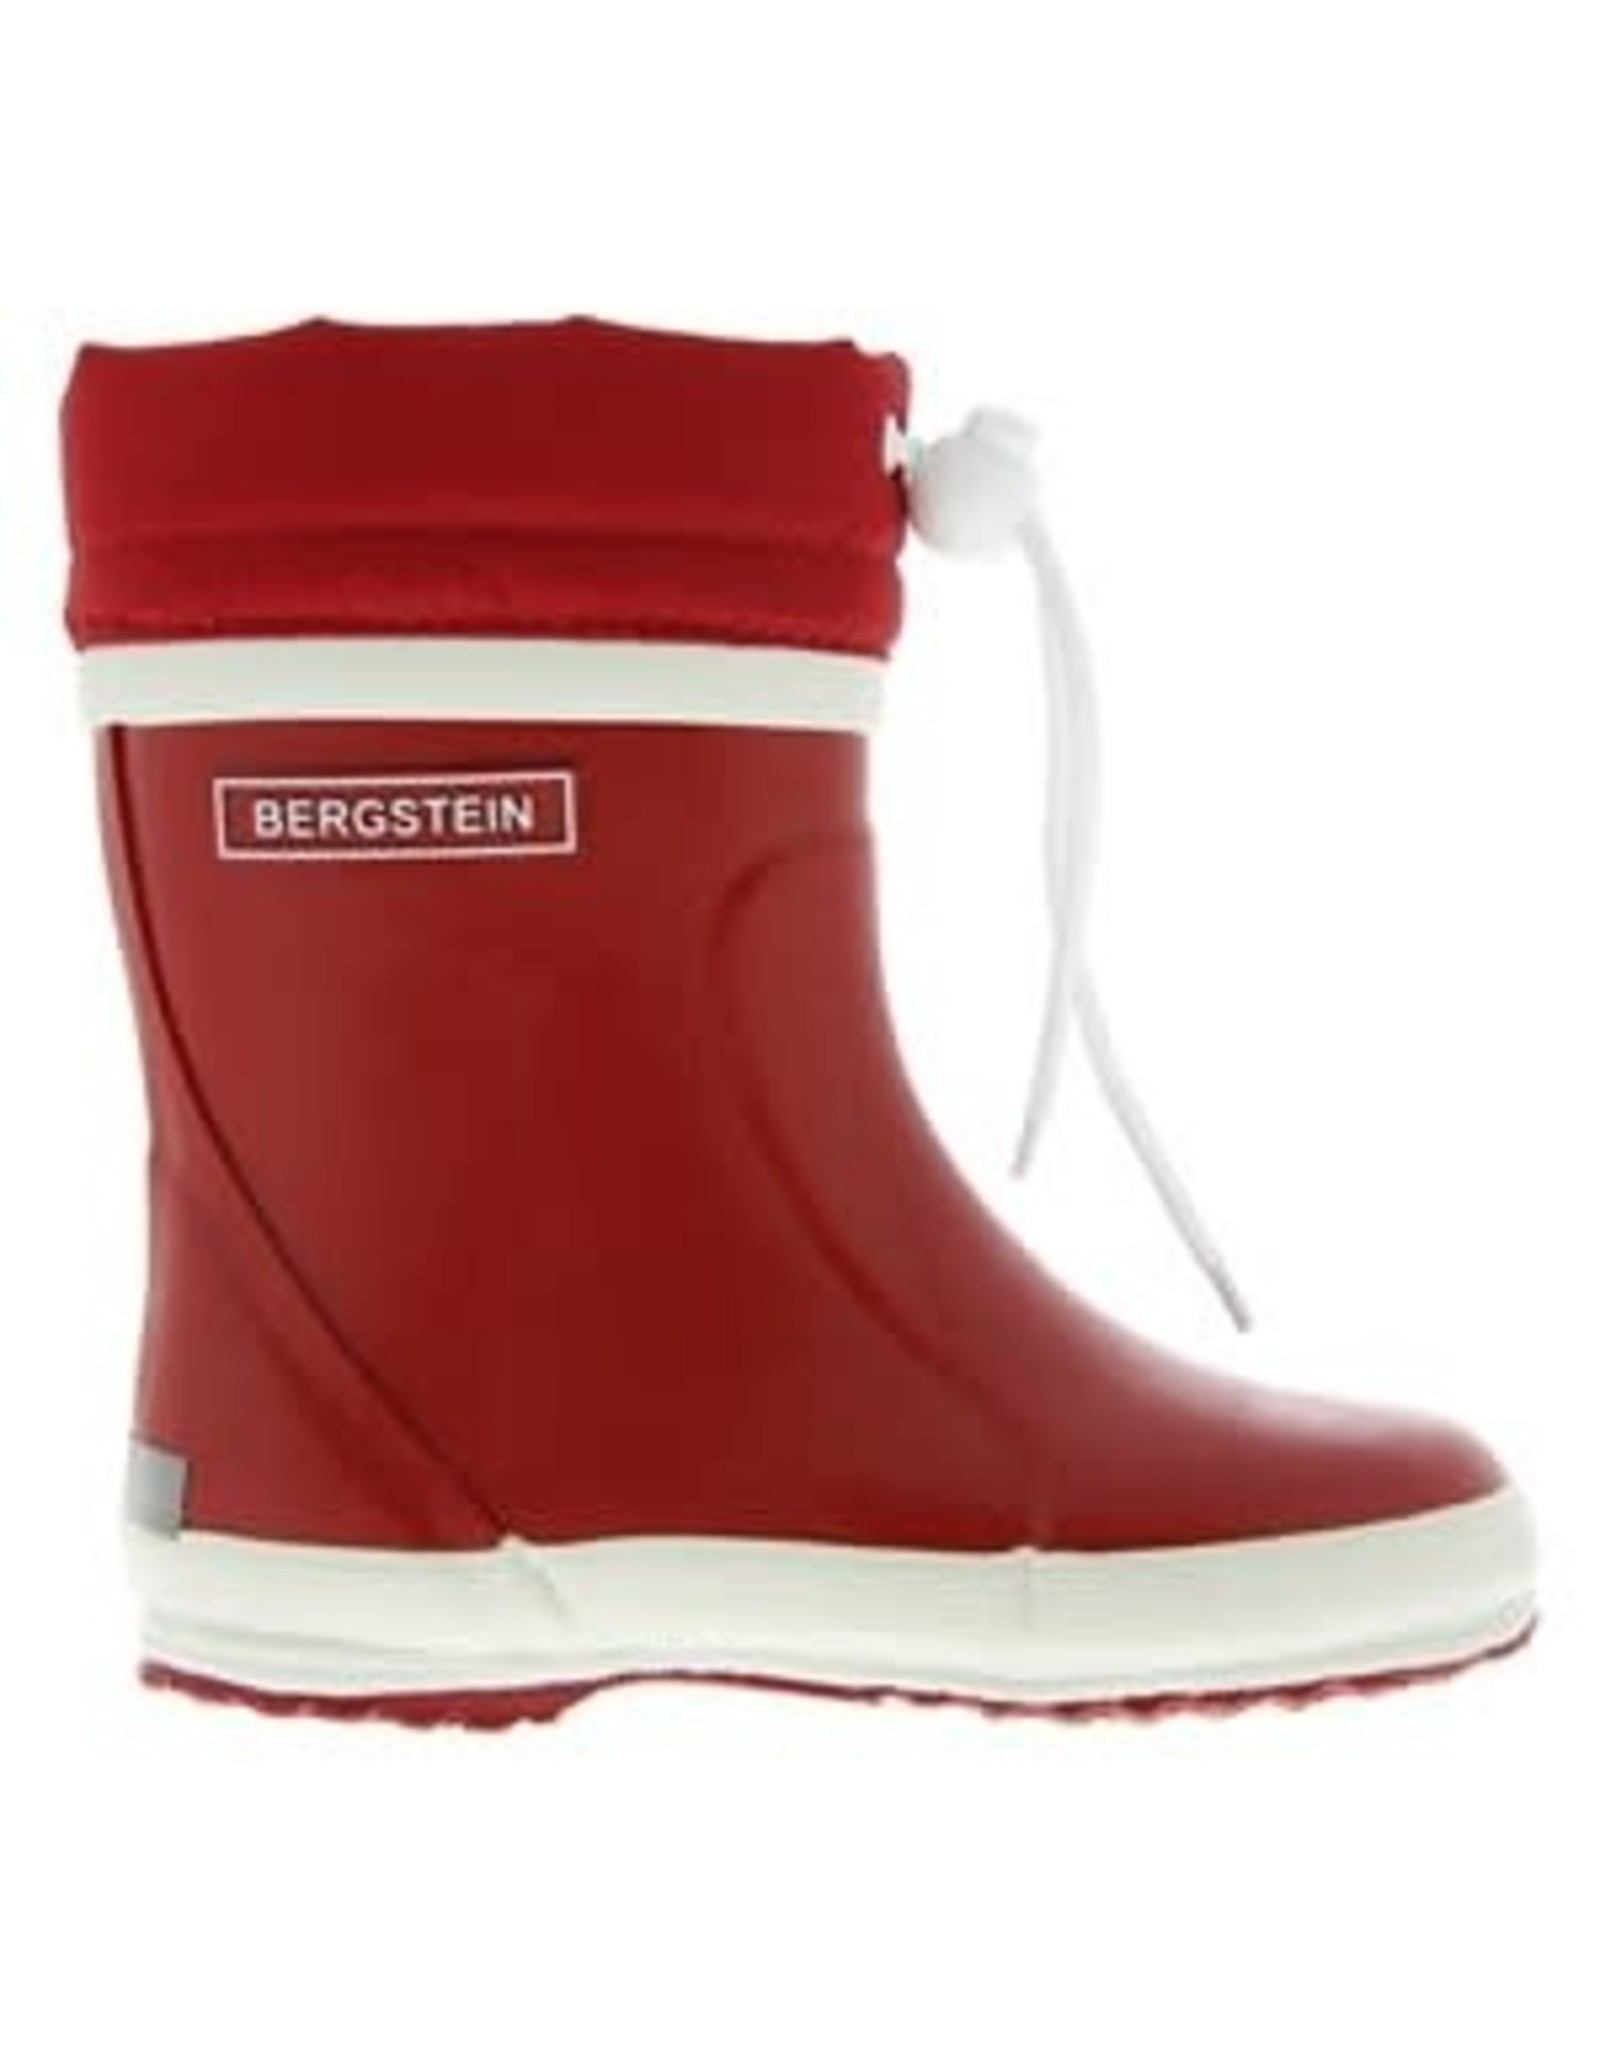 Bergstein Winterboot red fured